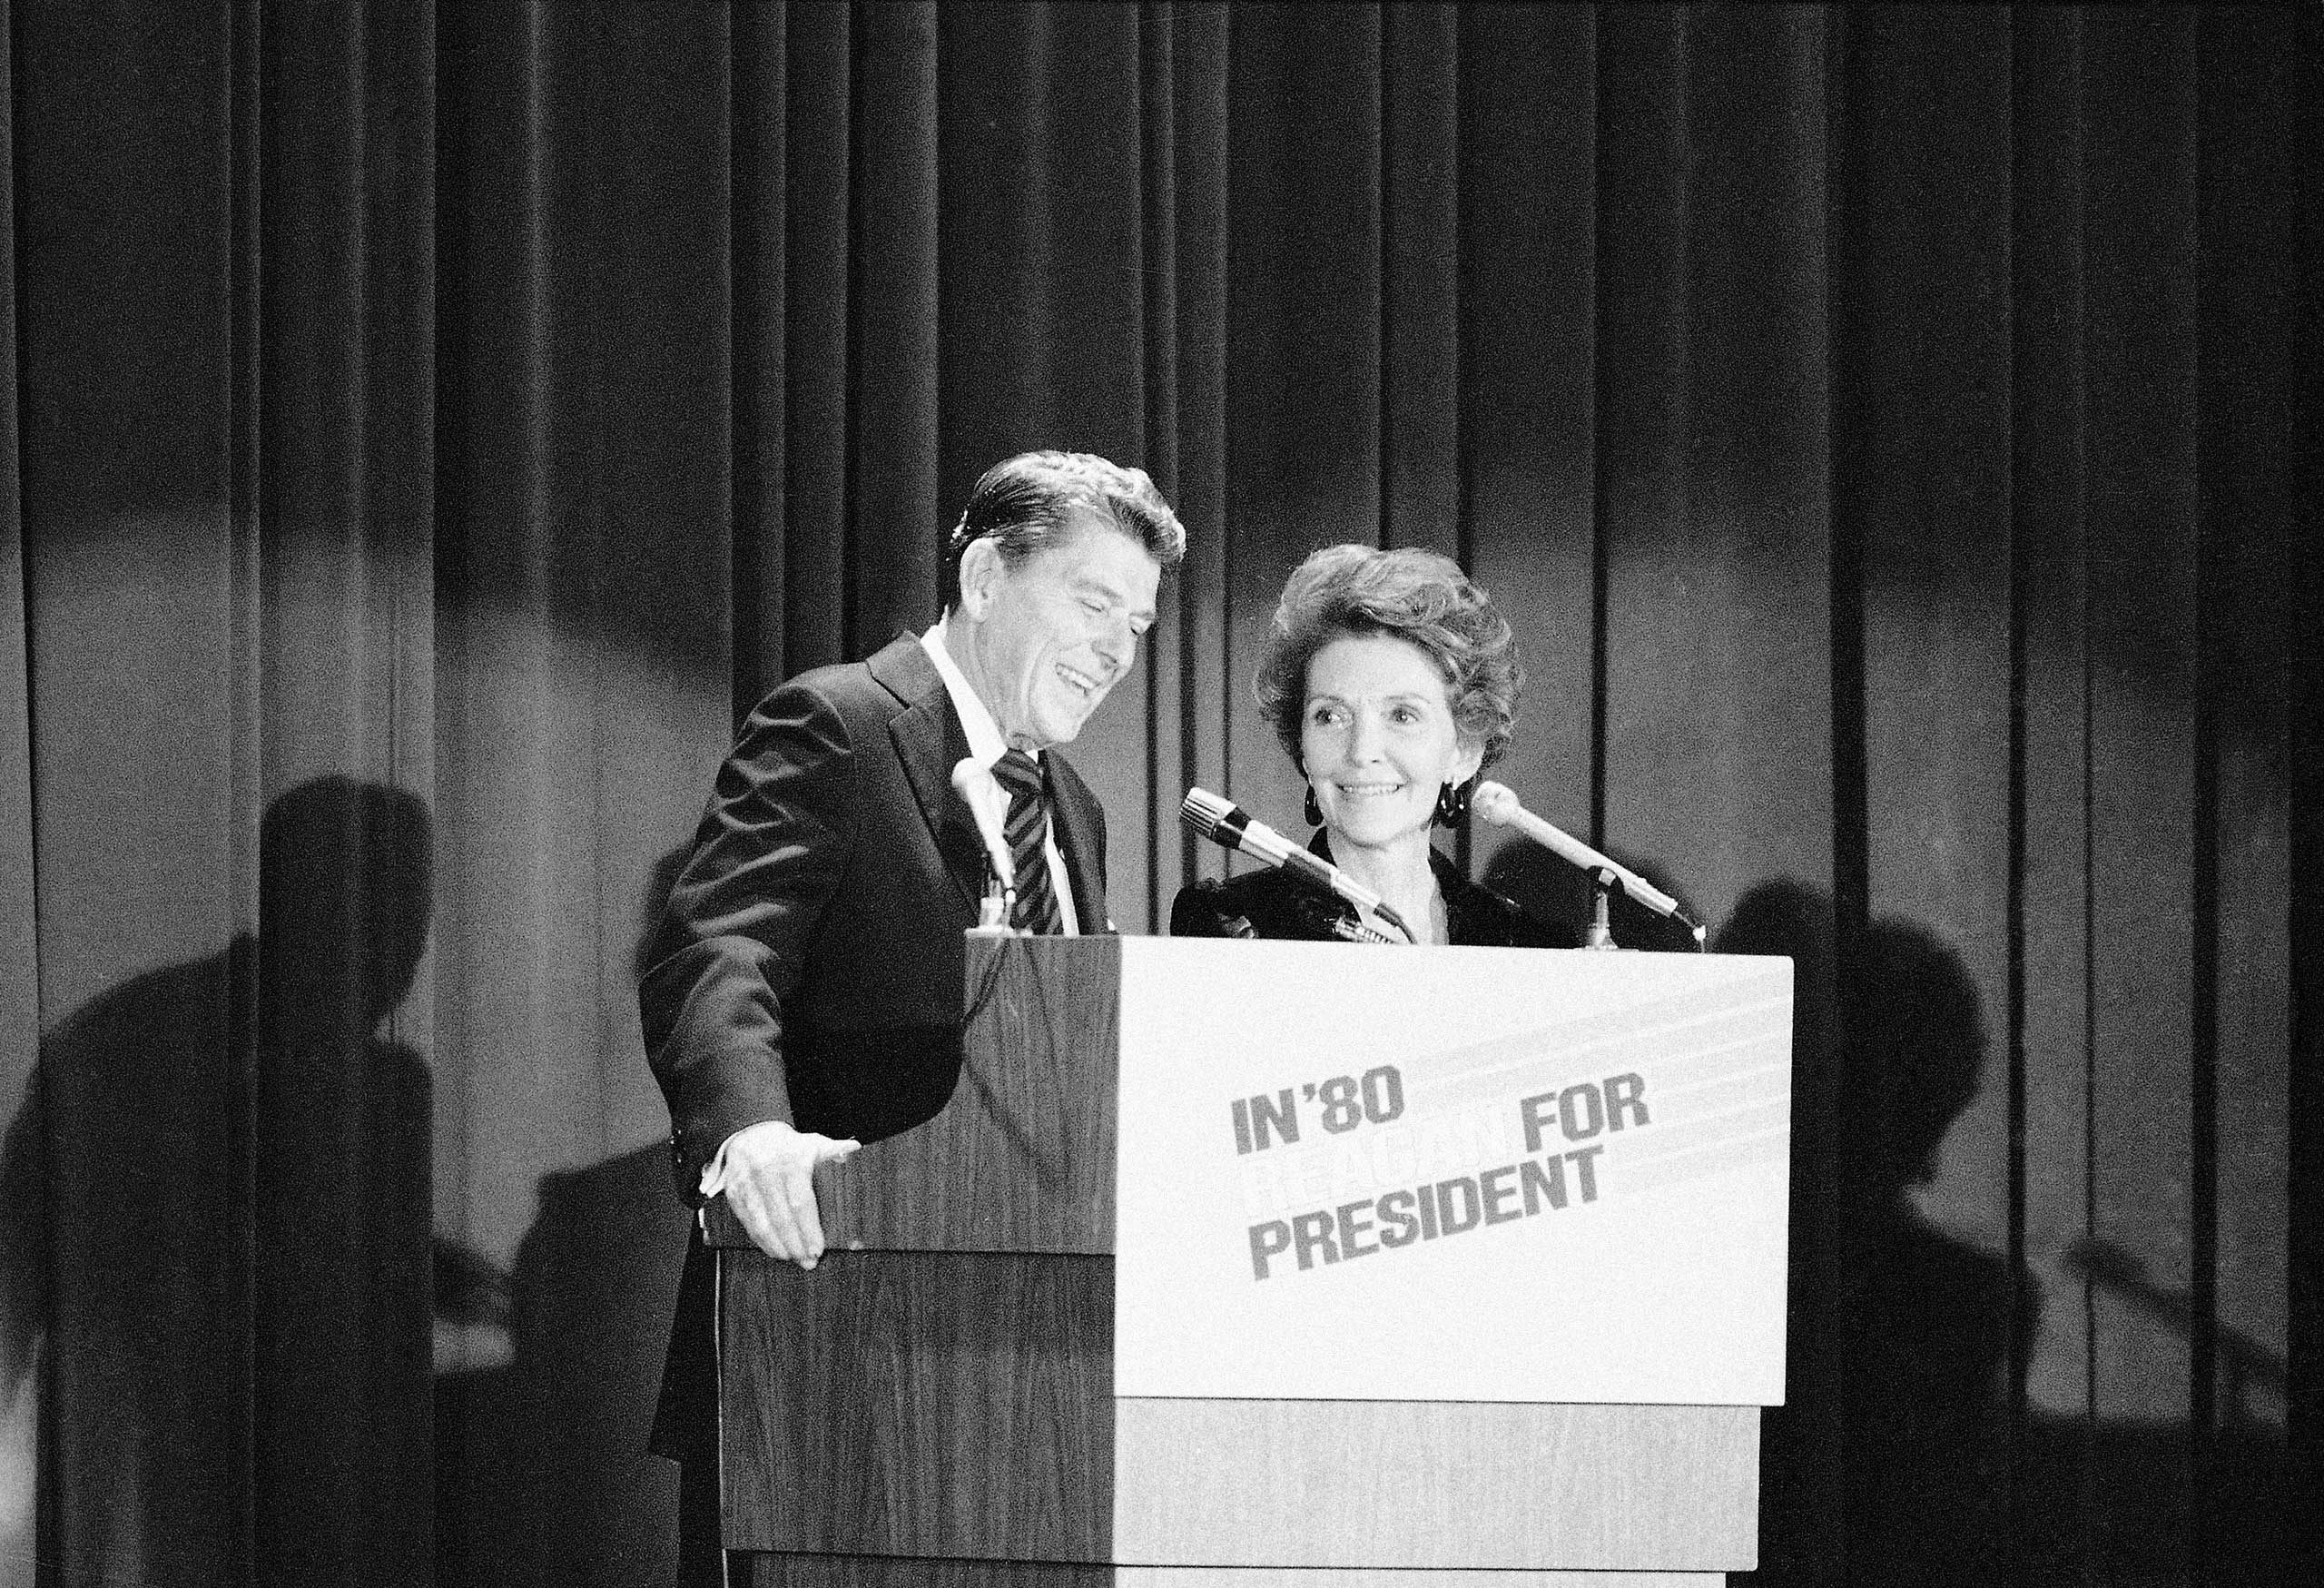 Ronald Reagan launched his presidential campaign on Nov. 13, 1979,in  New York City with a speech about the role of government.